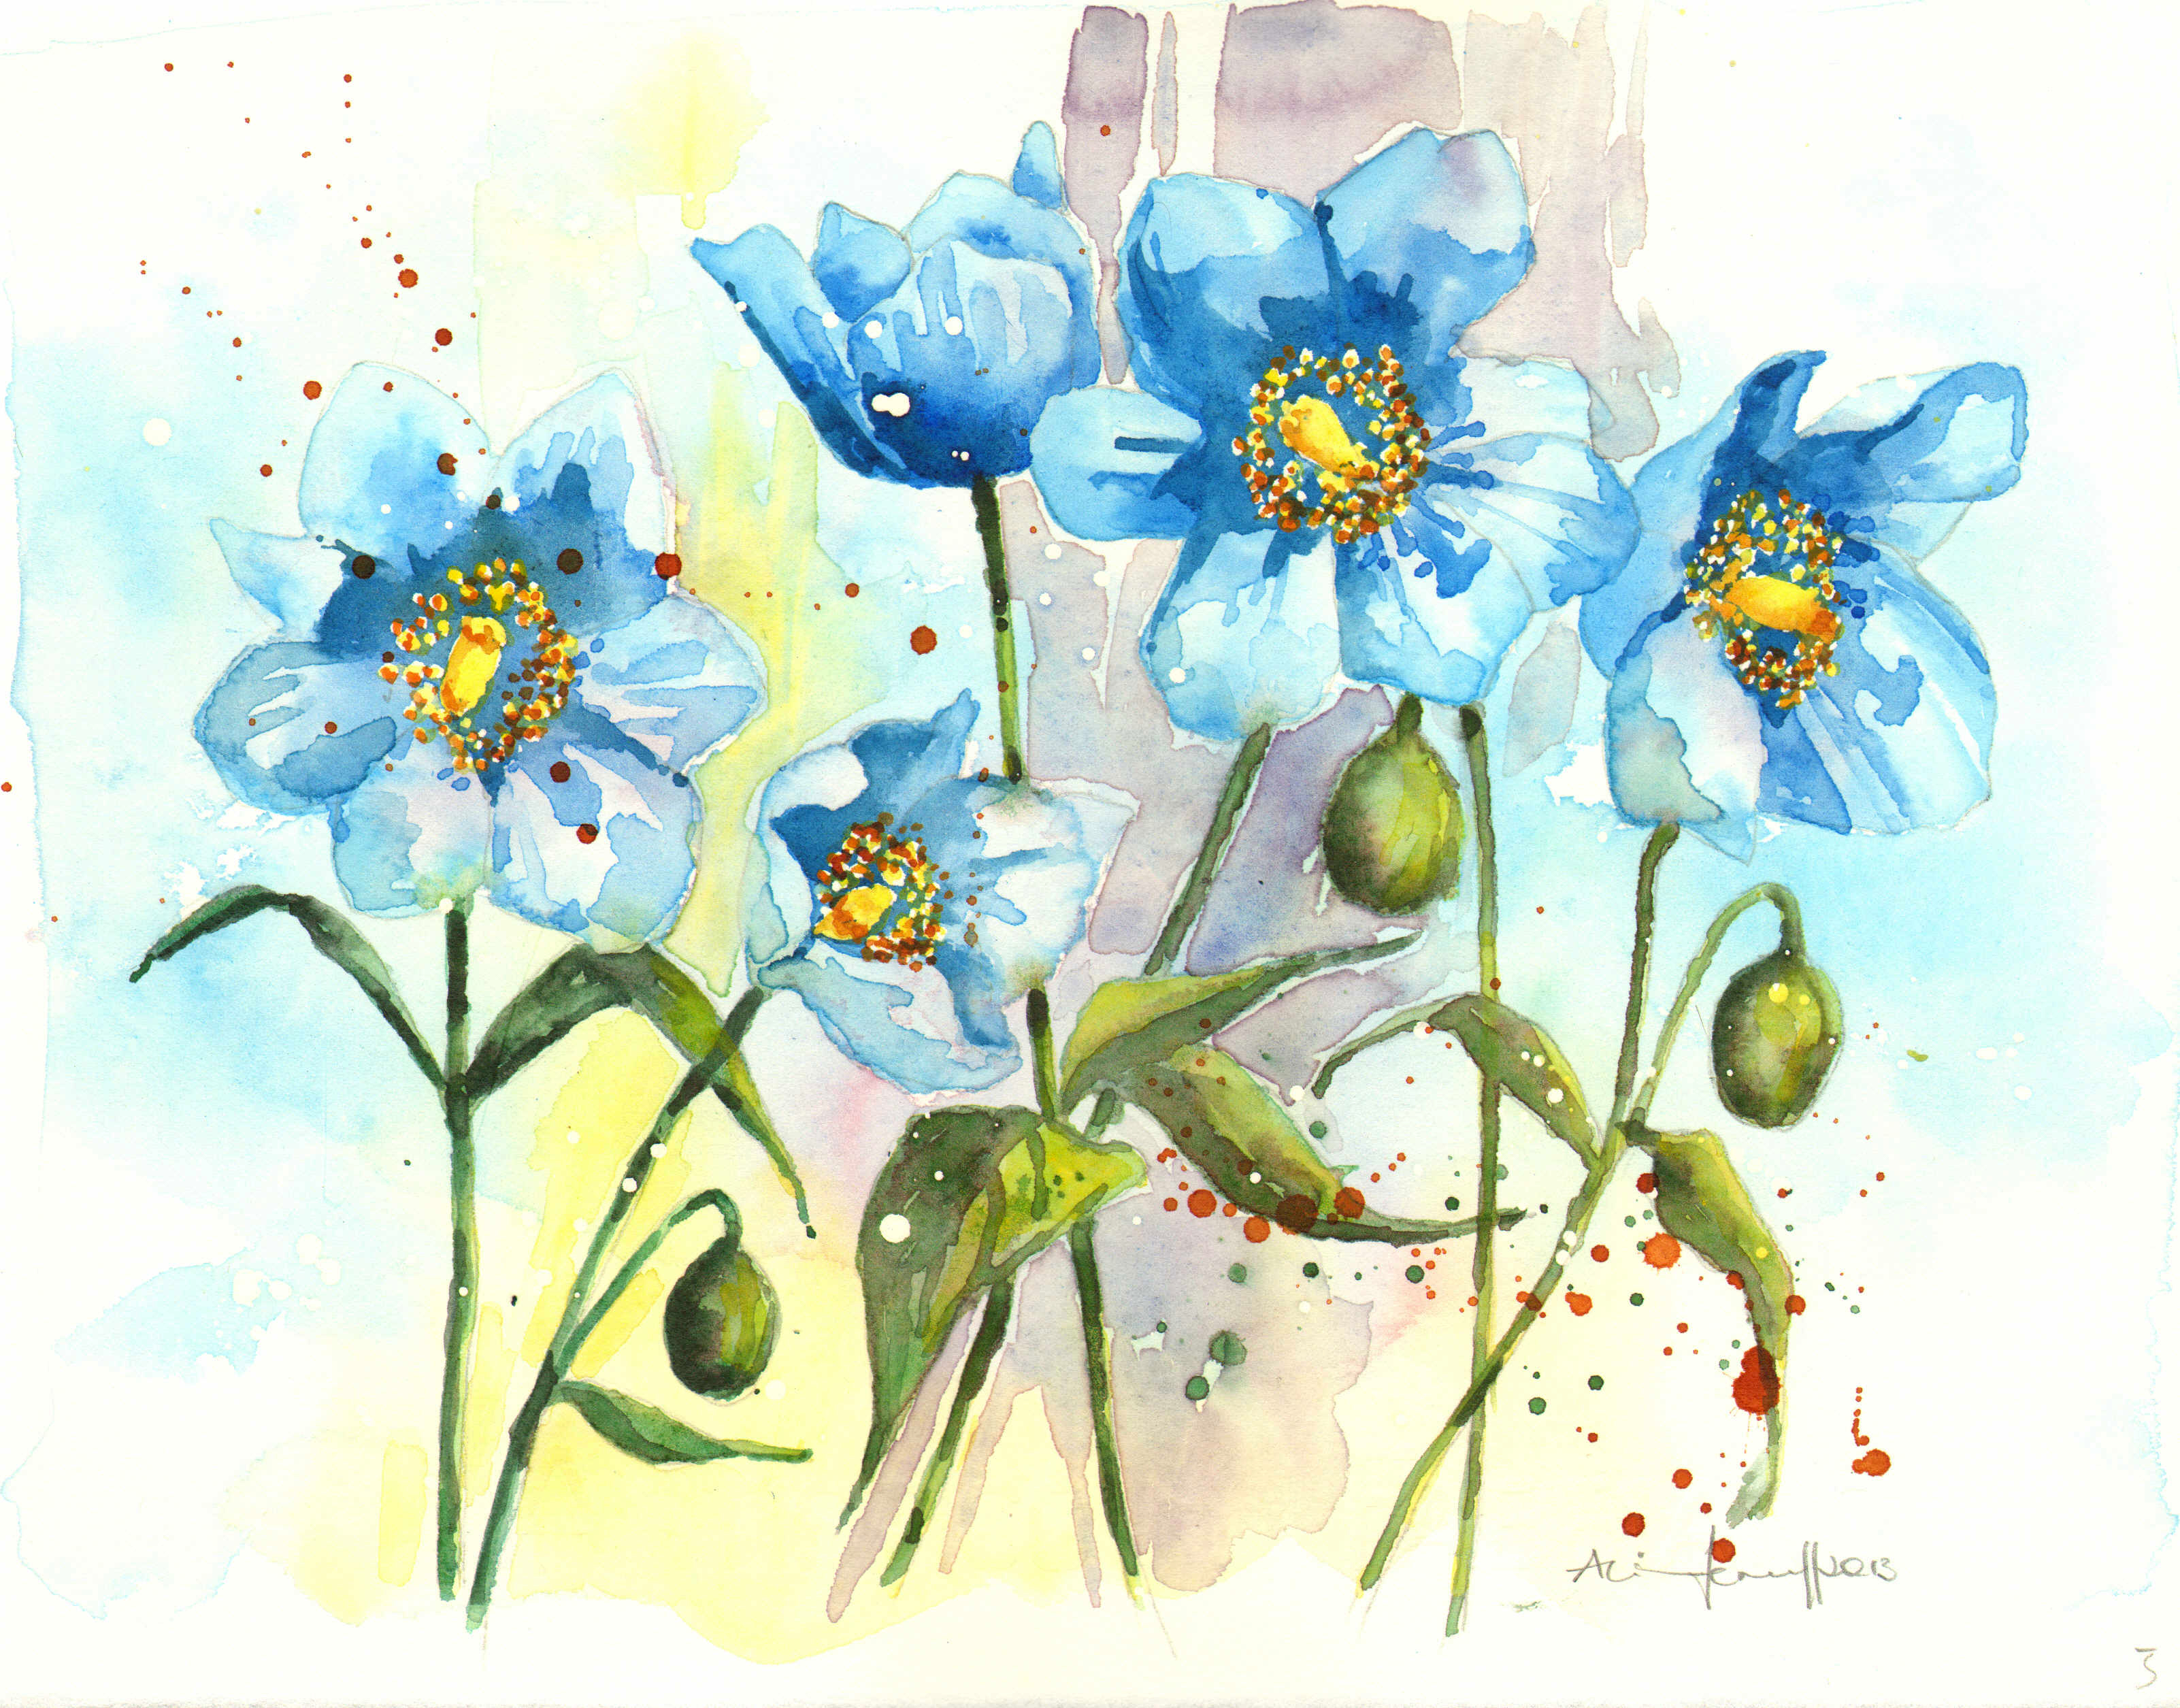 Drawn poppy blue poppy Get watercolour This paper! the